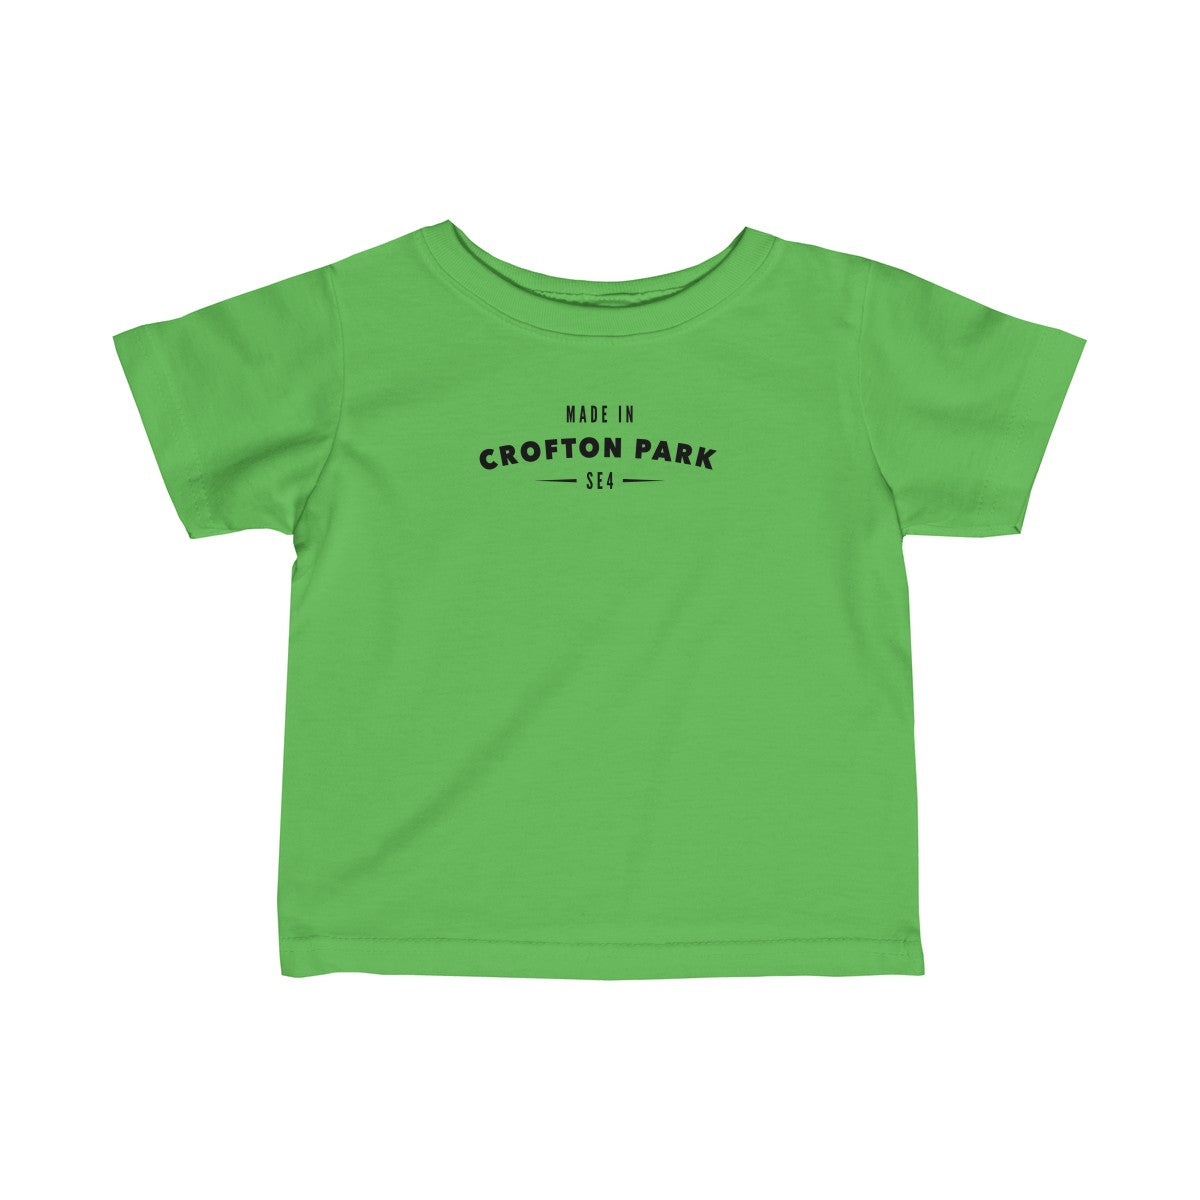 Made In Crofton Park Infant T-Shirt